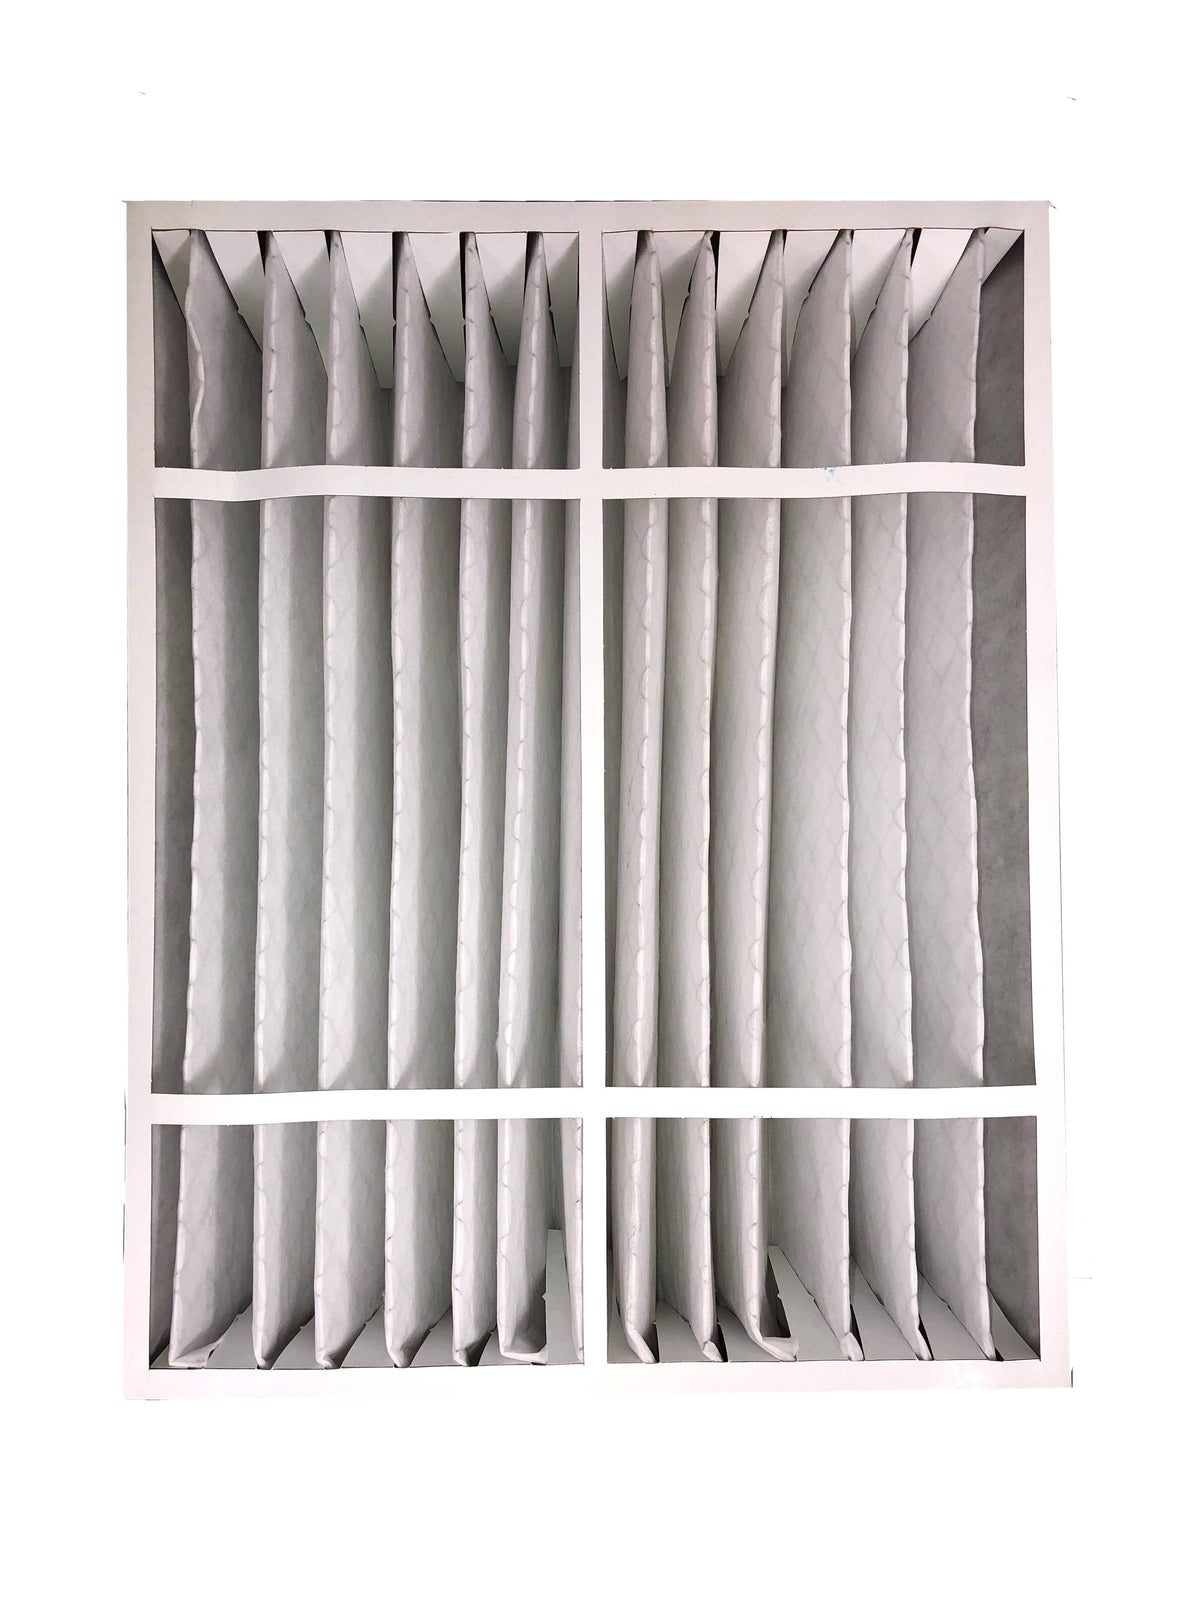 Carrier FILXXFNC0017 16x20x4 MERV 8 Replacement Furnace Filter - 2 Pack